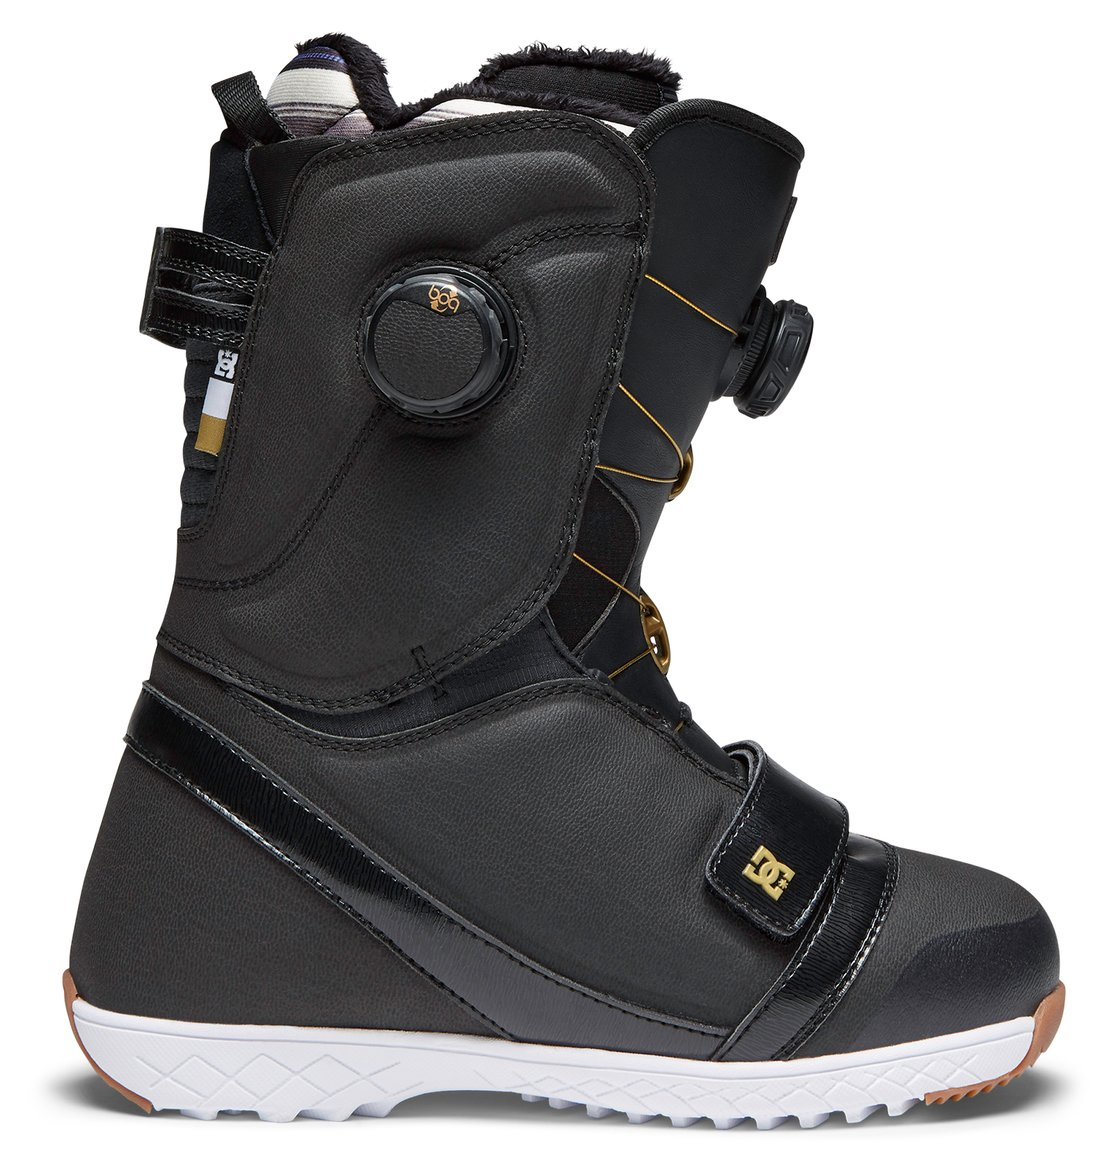 mora boa snowboard boots 3613372666520 dc shoes. Black Bedroom Furniture Sets. Home Design Ideas